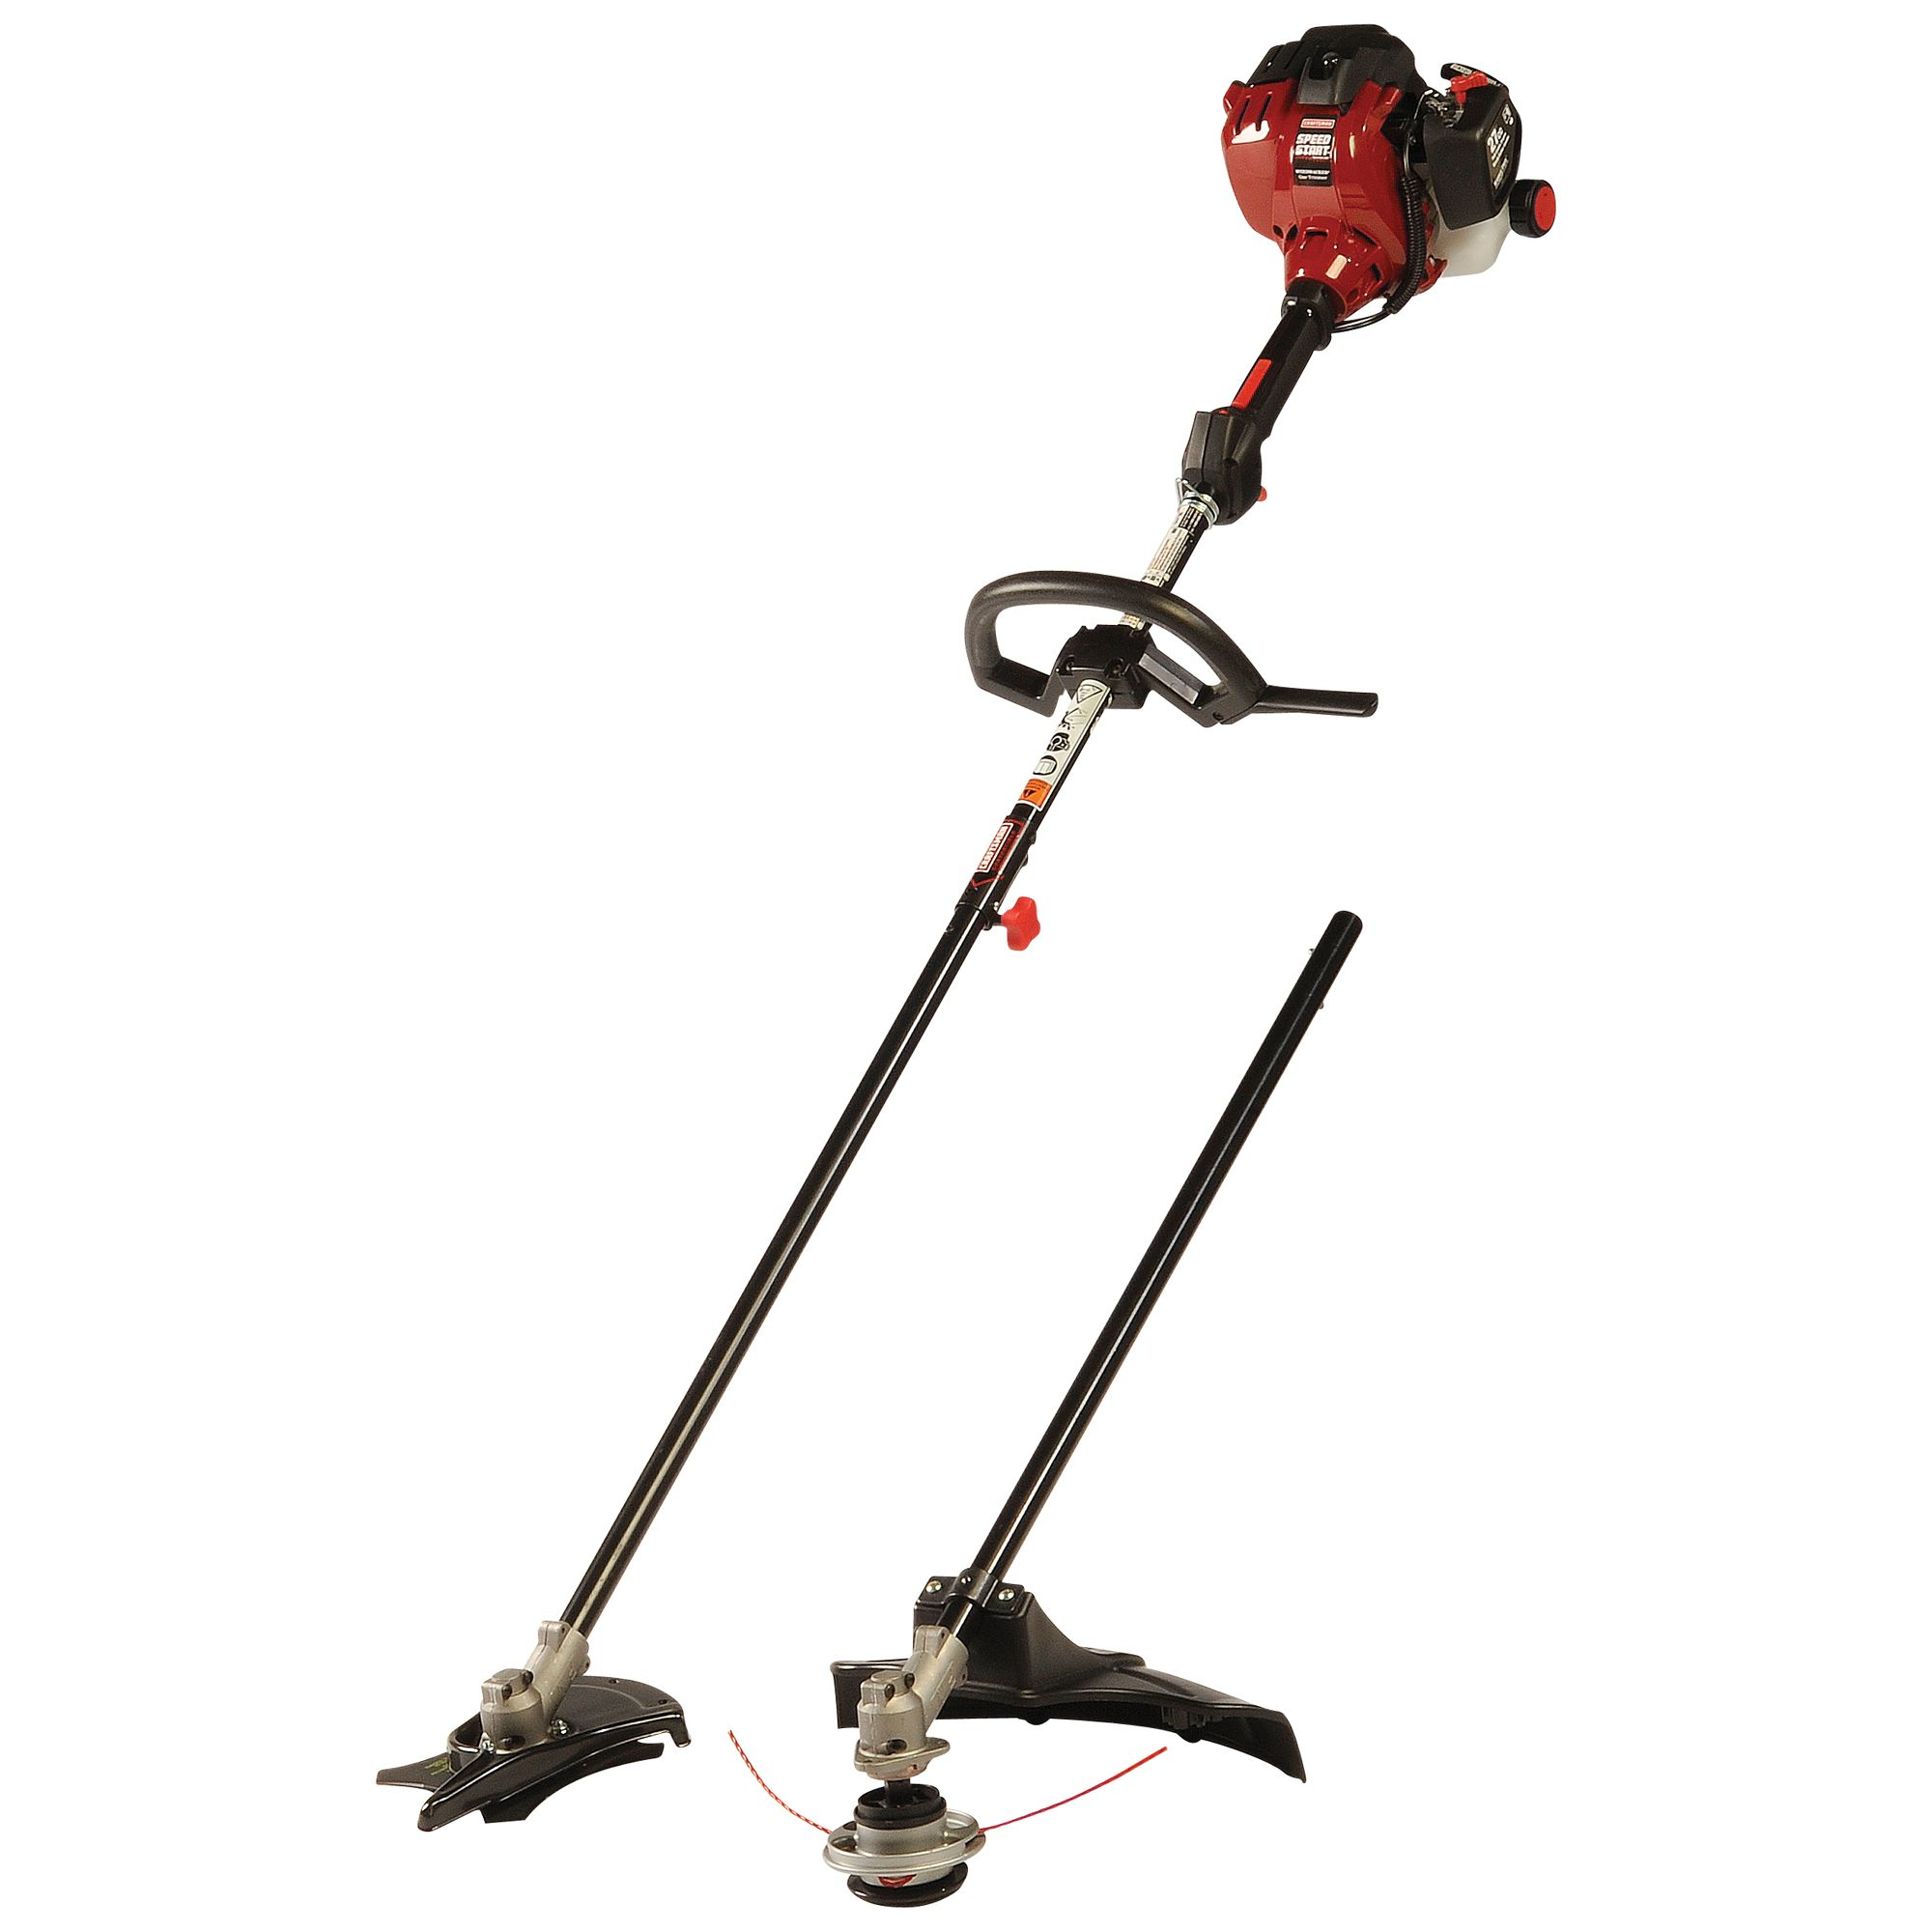 hight resolution of craftsman gas trimmer full crank brushcutter weedwacker combo 27 cc 2 cycle